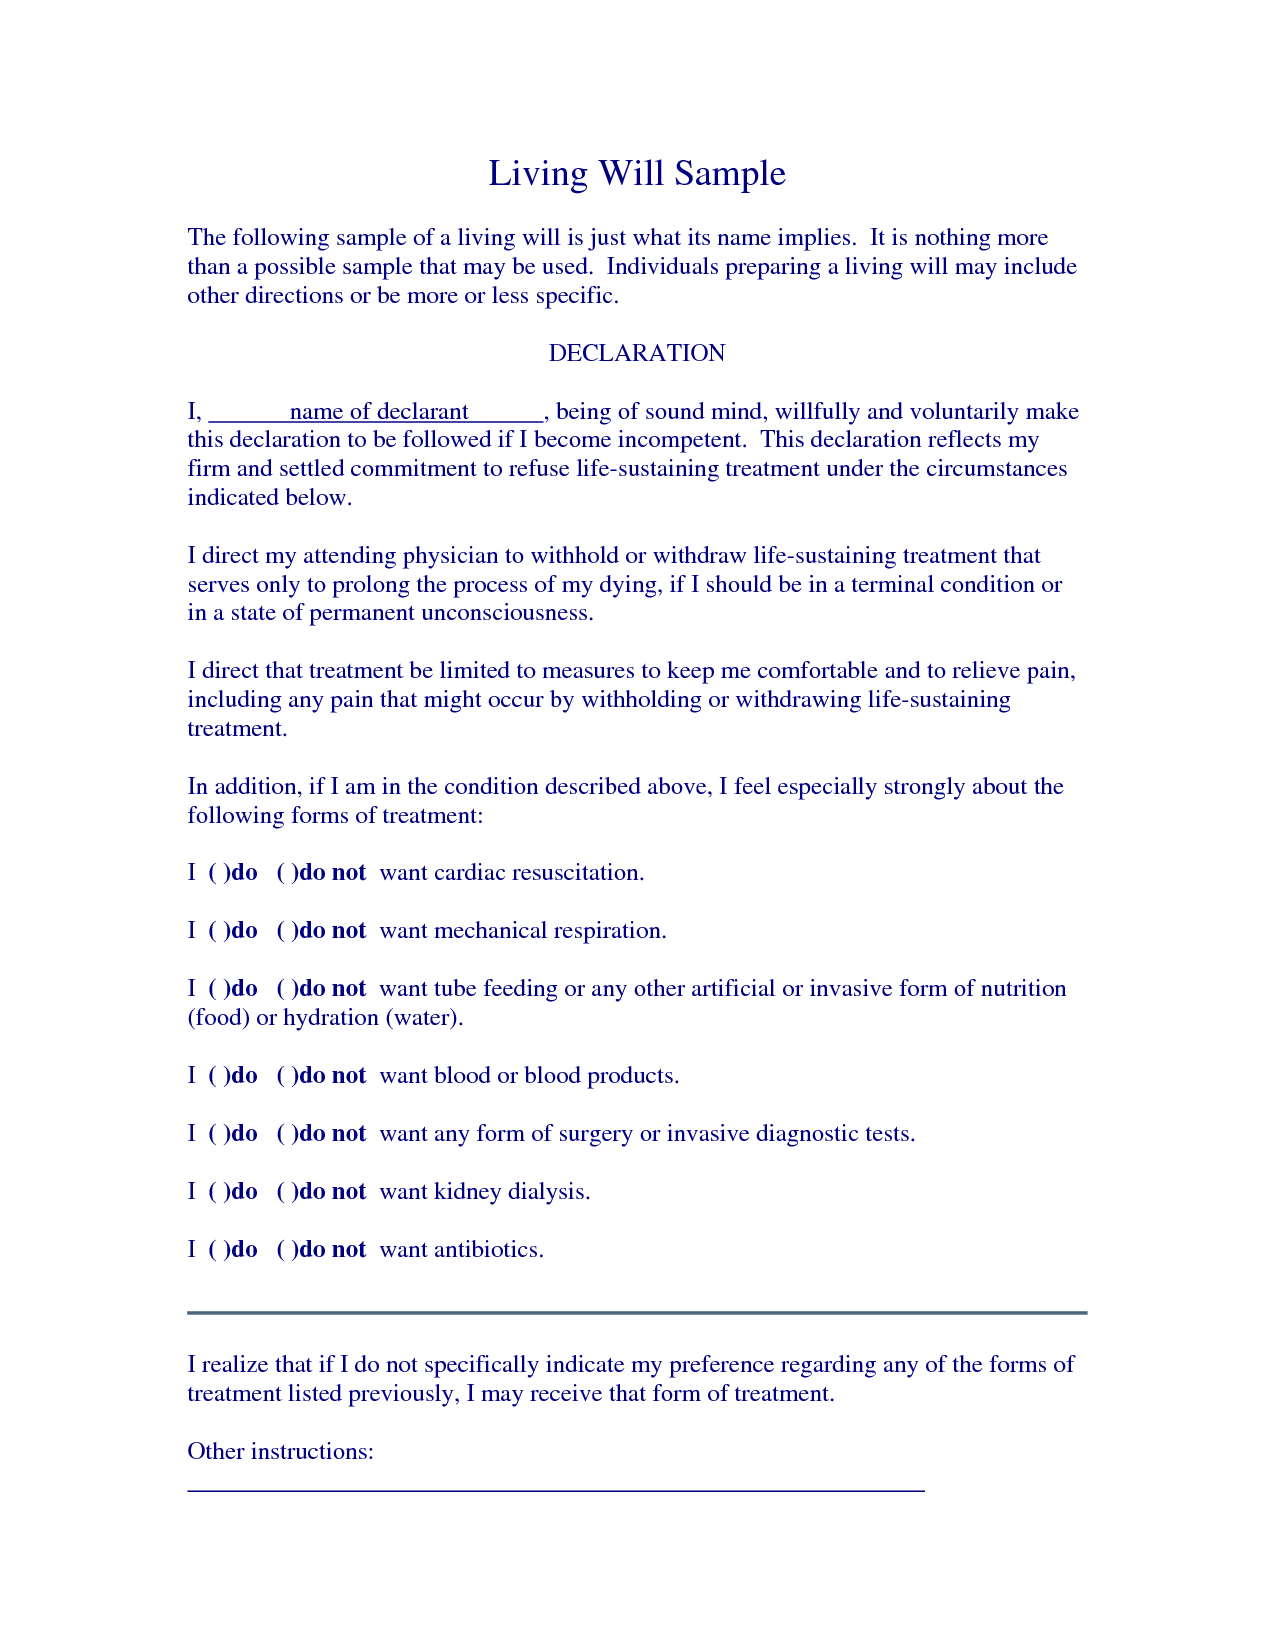 Free Living Will Samplescrizlap - Living Will Examples | Legal - Living Will Forms Free Printable